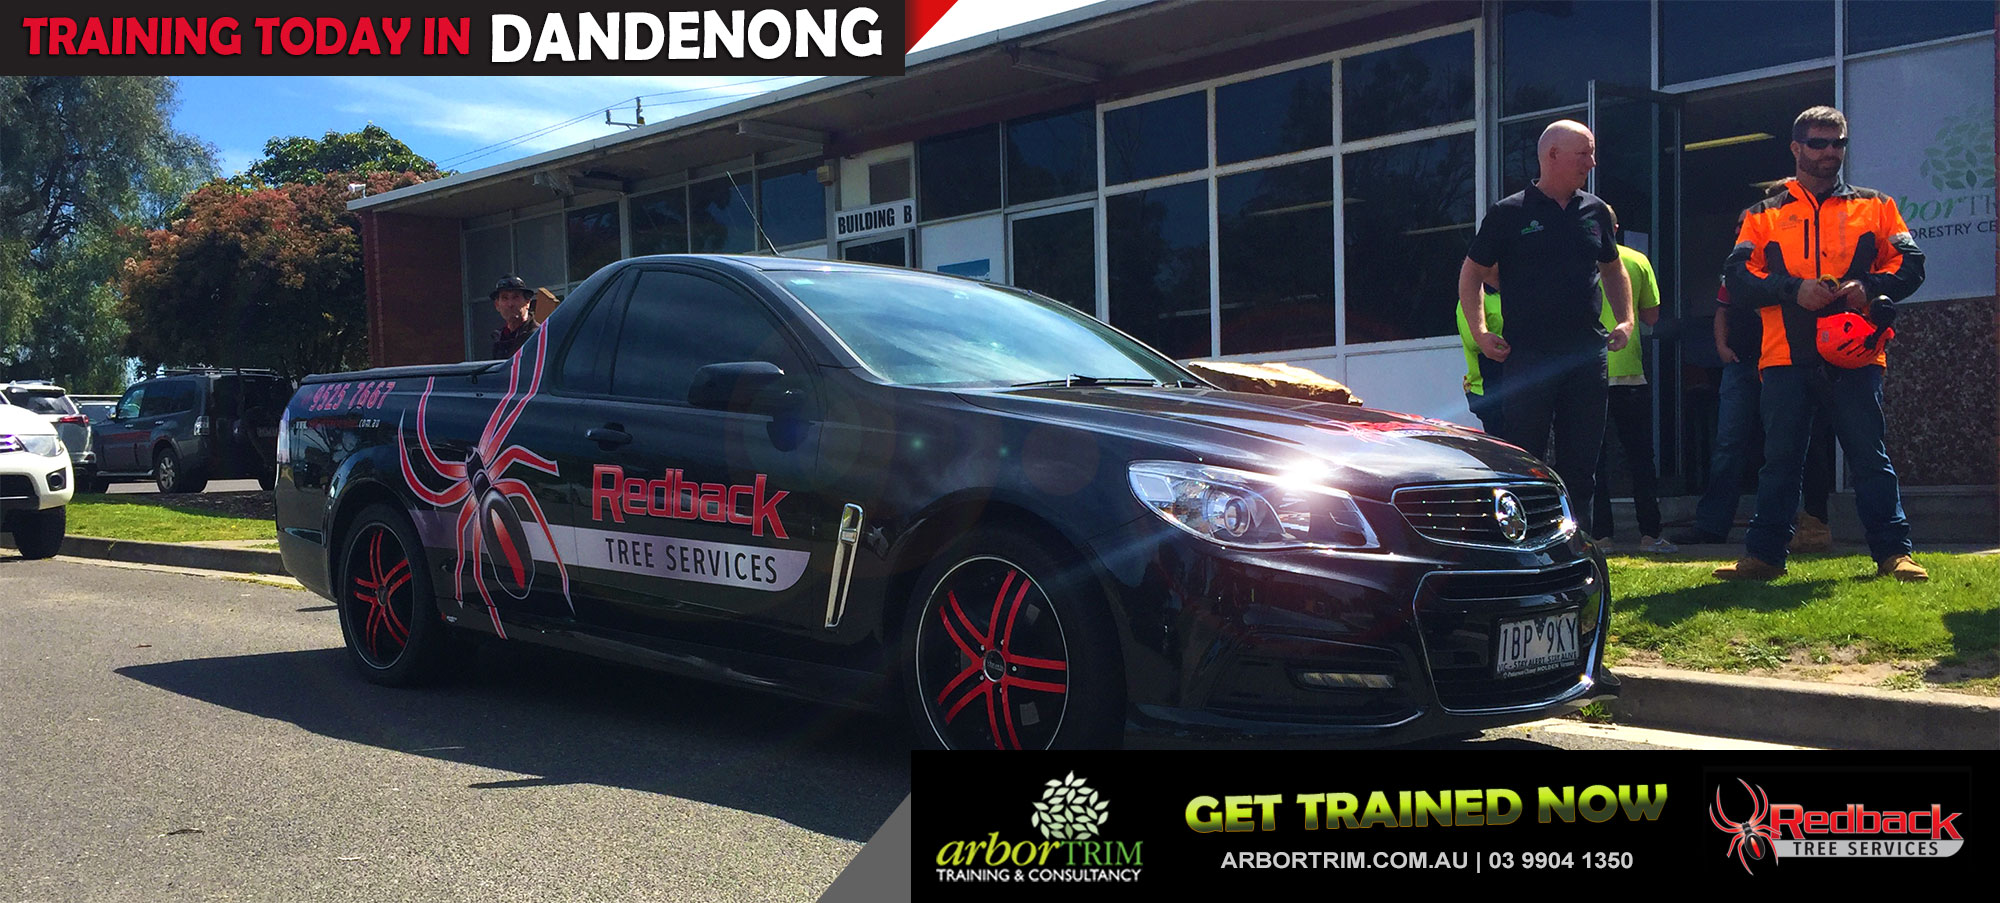 Training today | Arbortrim – Dandenong | Redback Tree Services